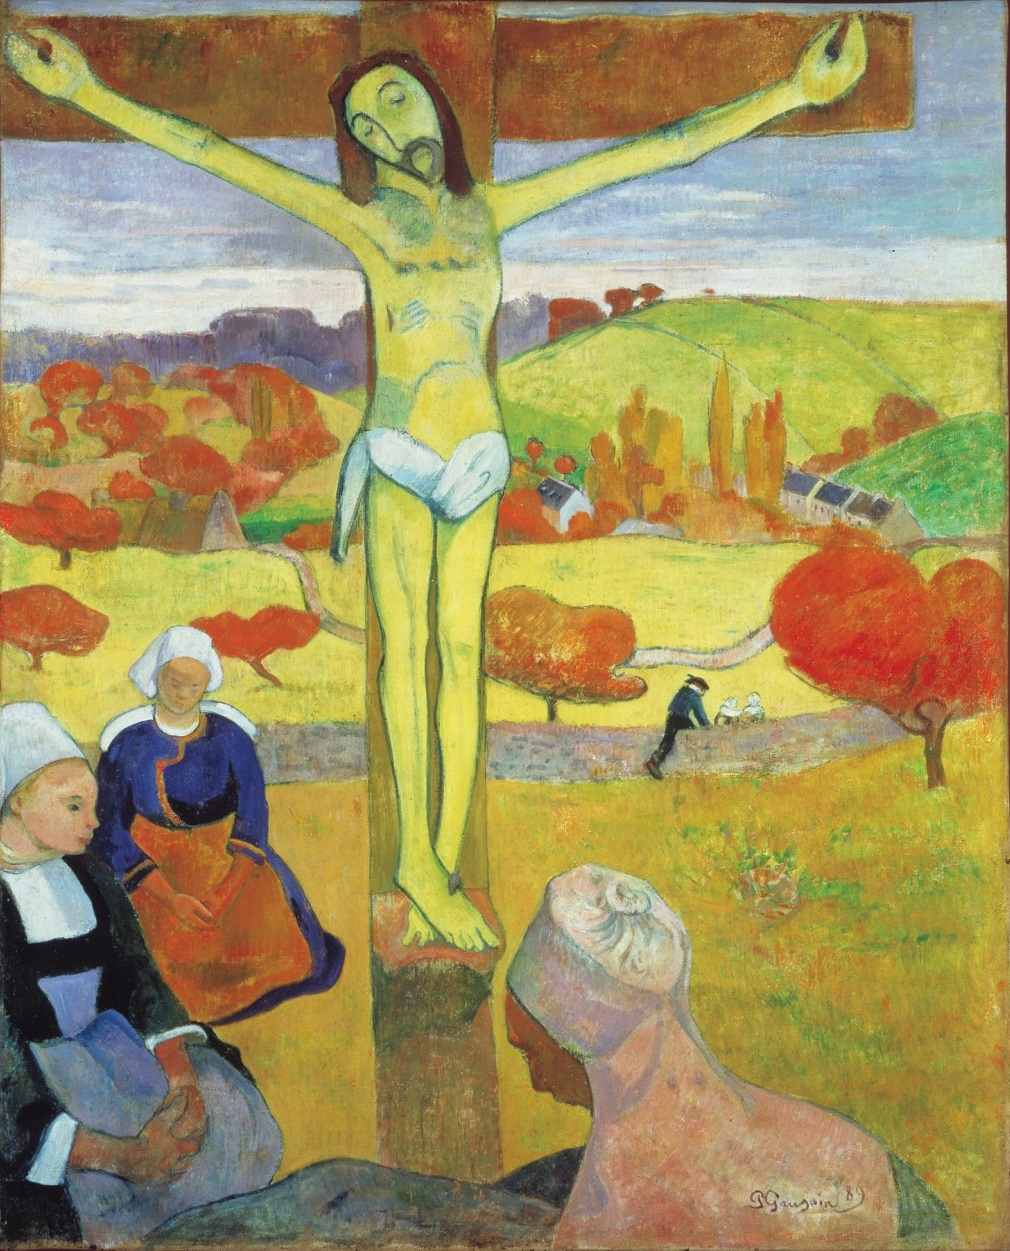 Paul Gauguin, The Yellow Christ, 1889. Collection of the Albright-Knox Art Gallery, Buffalo.